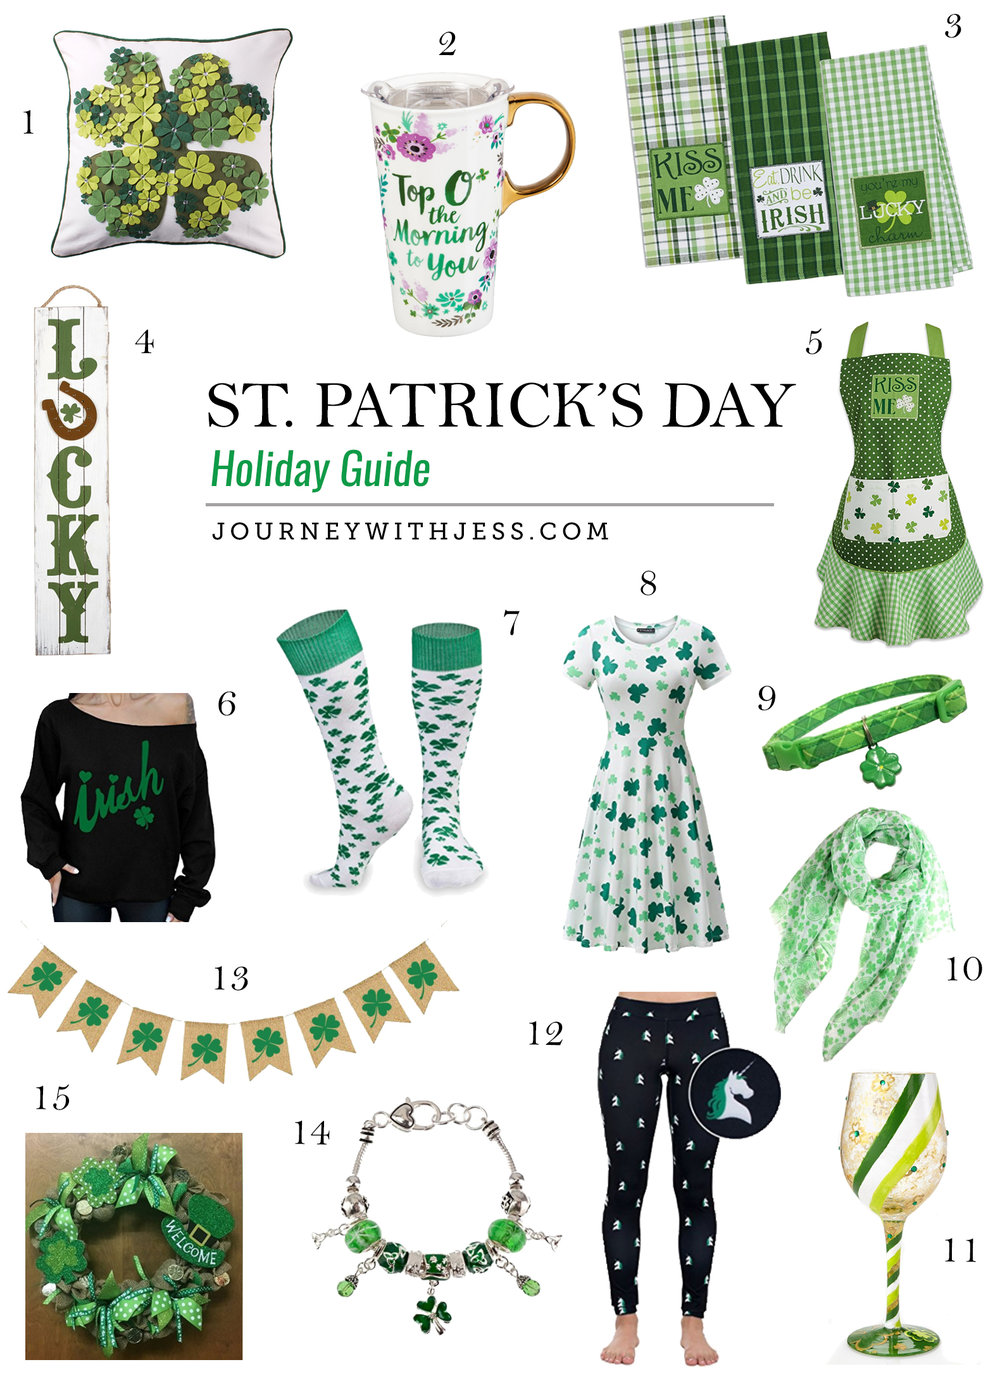 stpatricksday-holidayguide